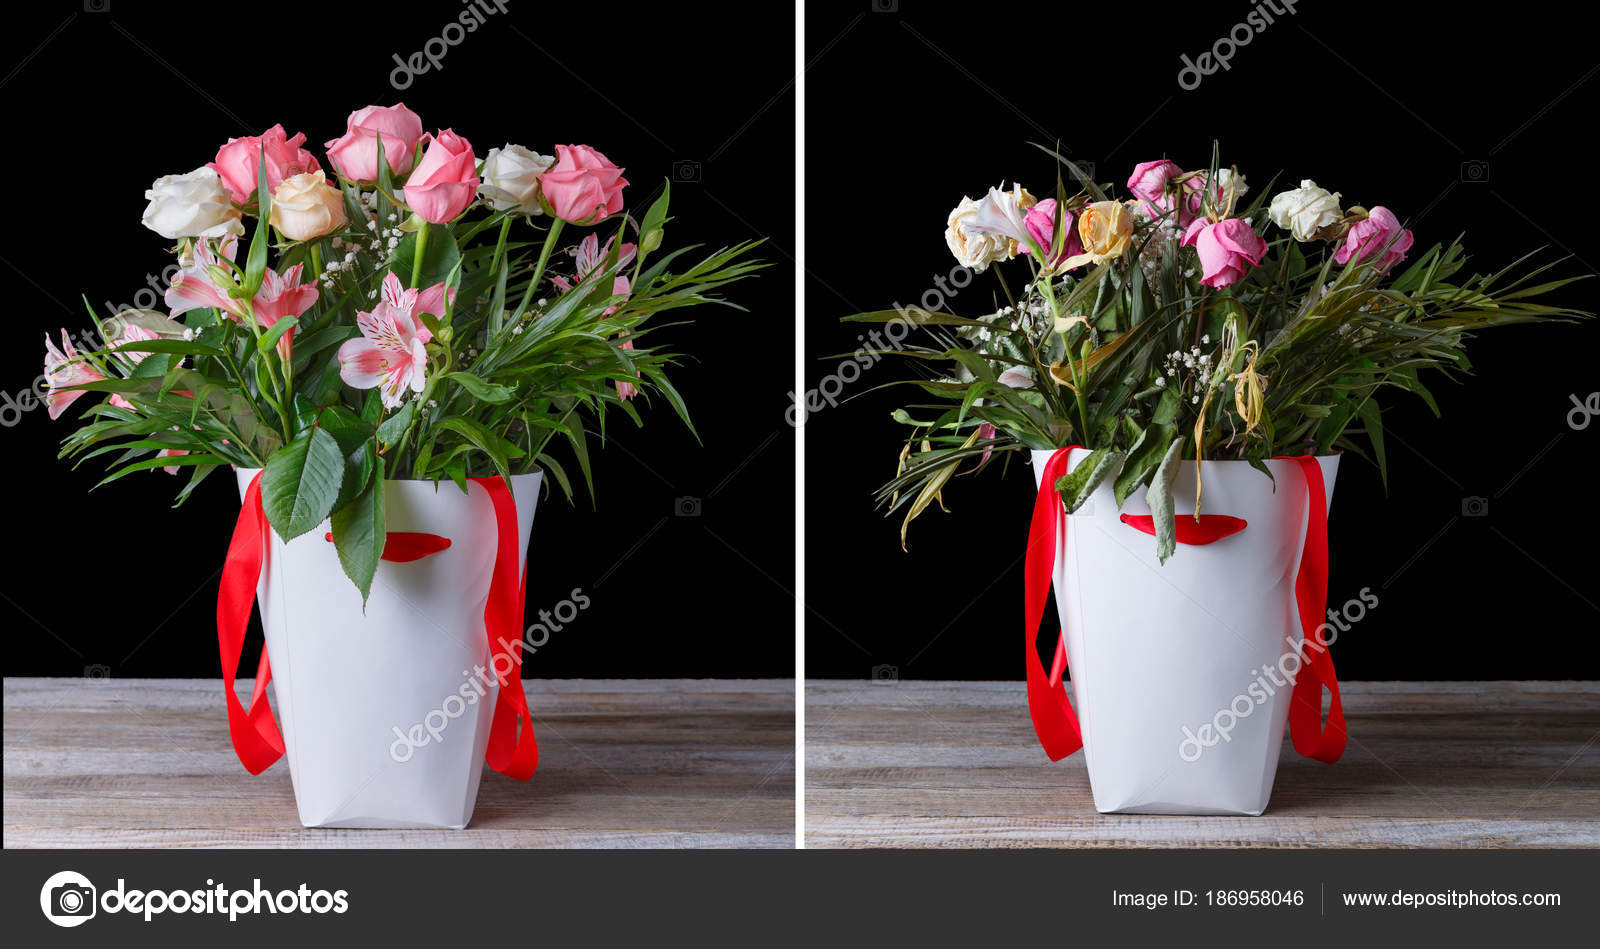 Wilted and fresh flower bouquet in the white boxes with red ribbons wilted and fresh flower bouquet in the white boxes with red ribbons on a wooden table izmirmasajfo